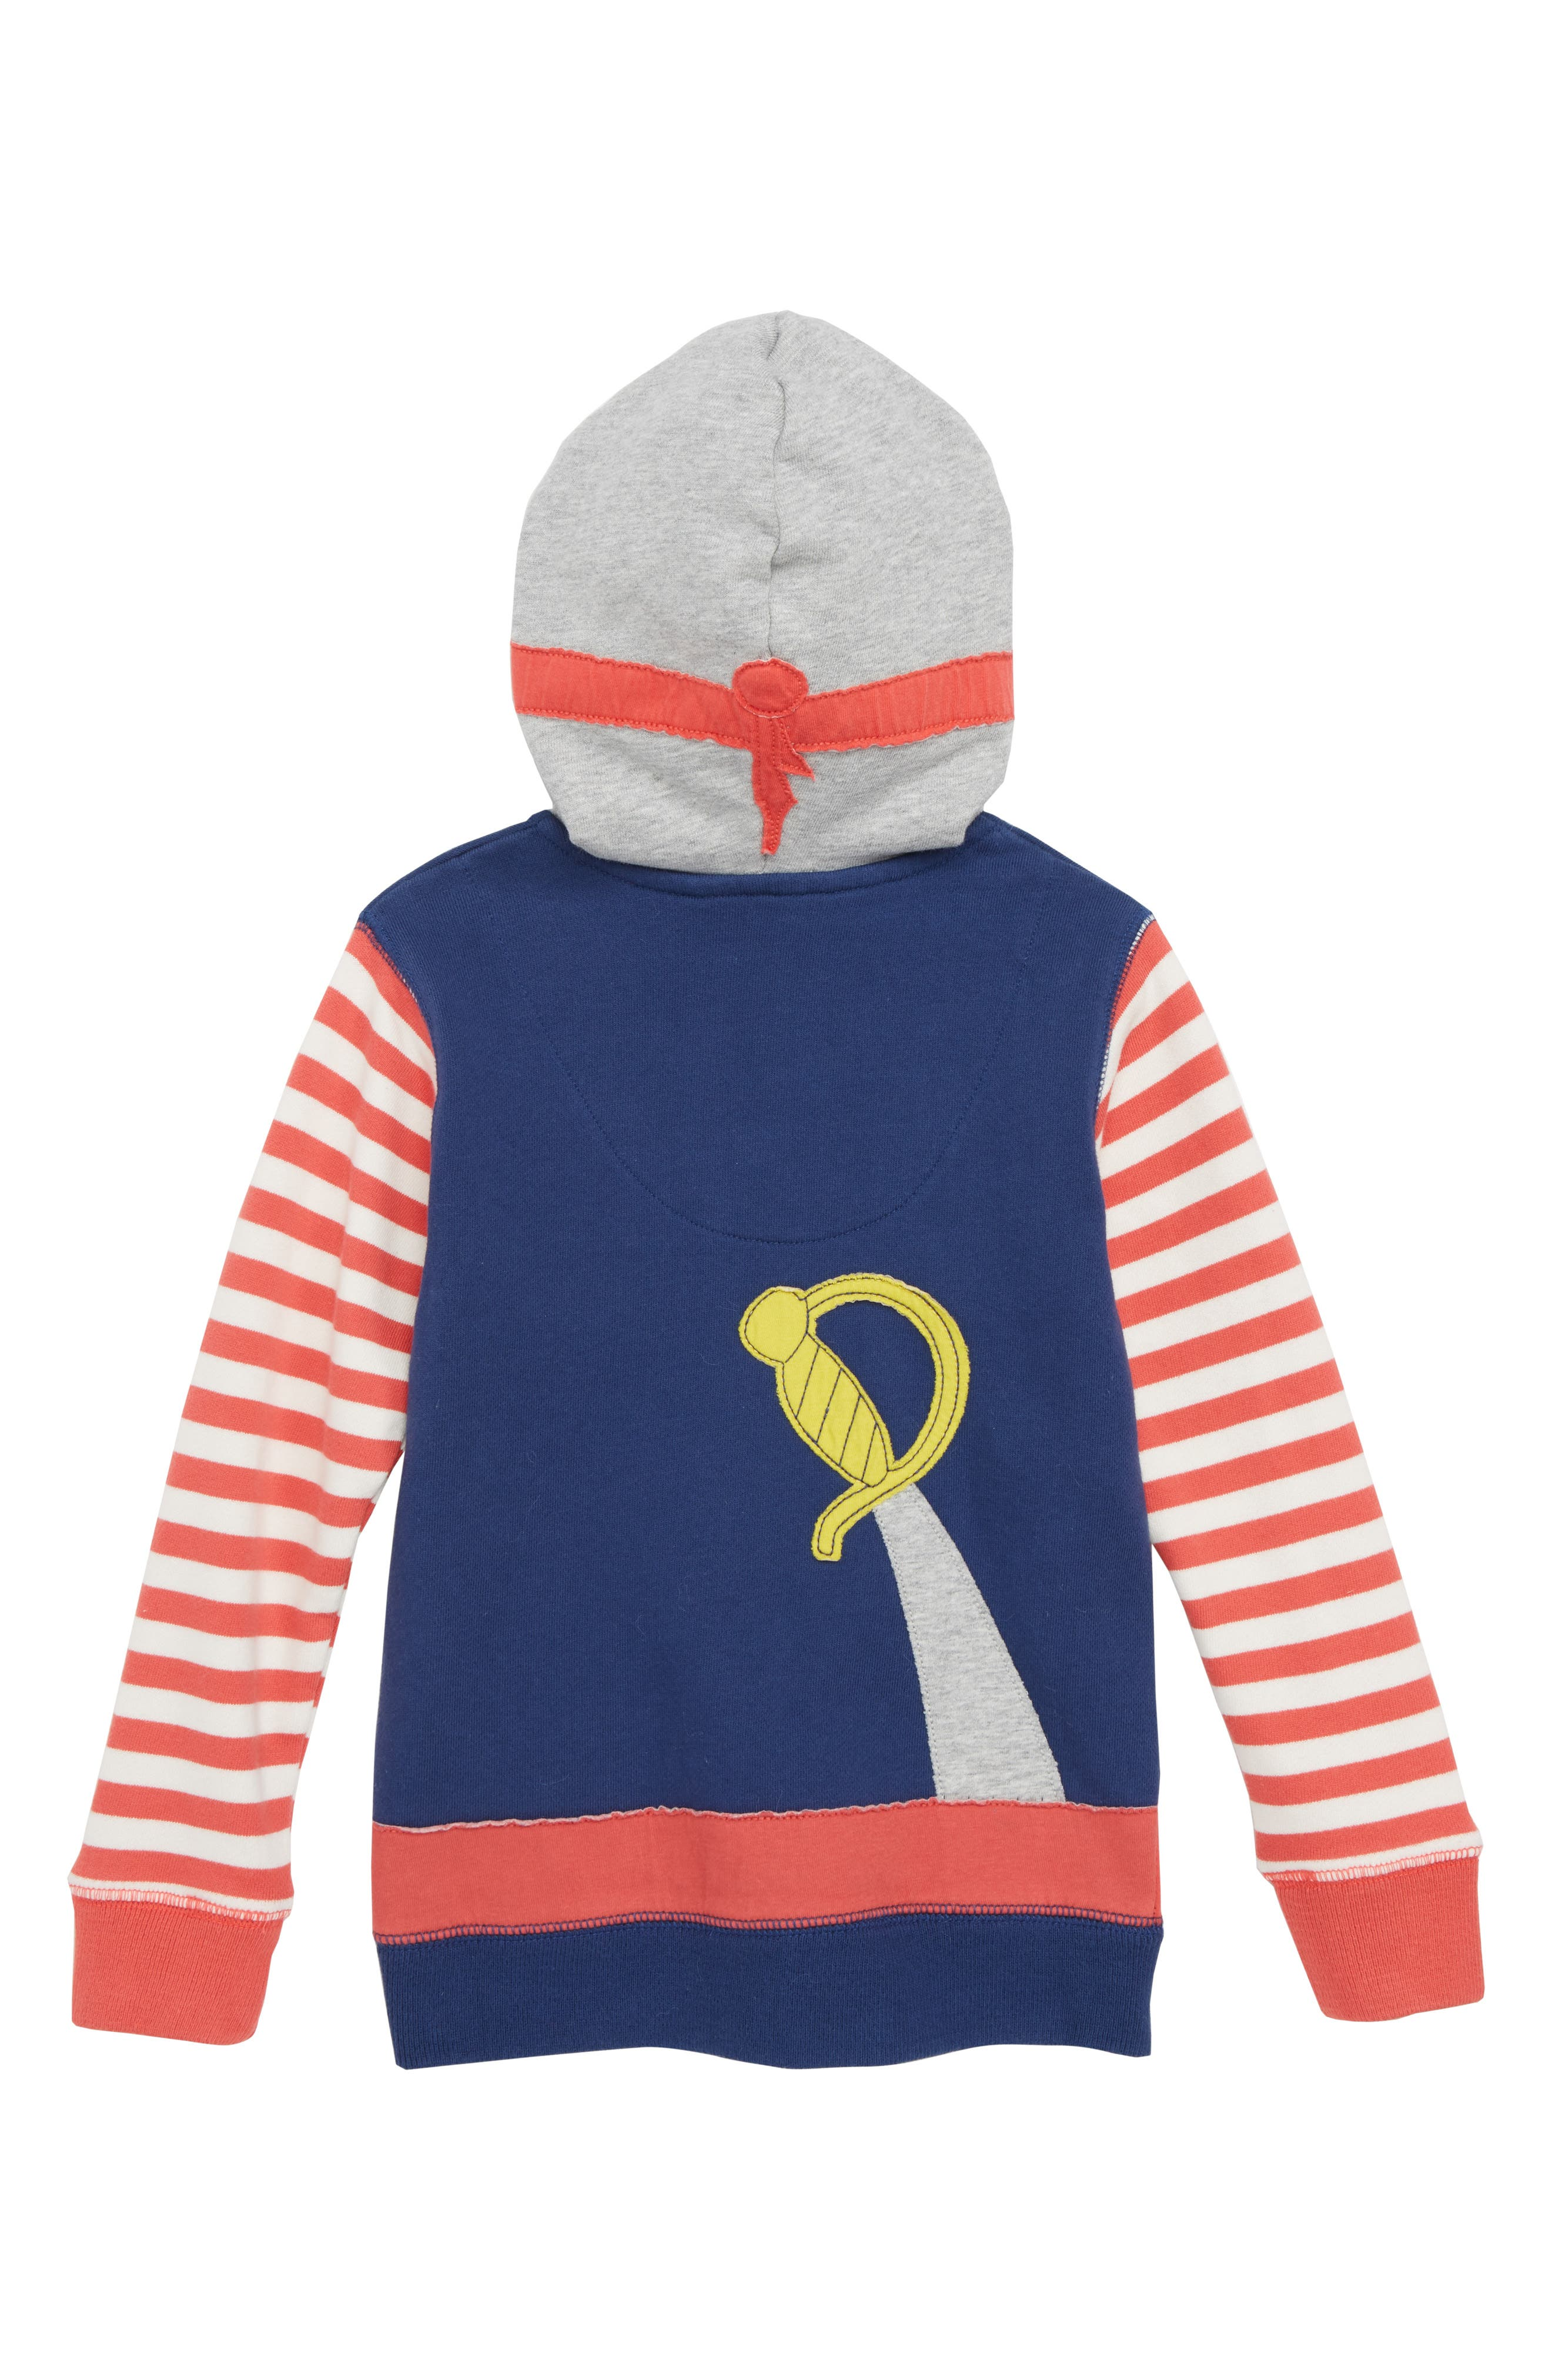 Novelty Pirate Hoodie,                             Alternate thumbnail 2, color,                             Beacon Blue Pirate